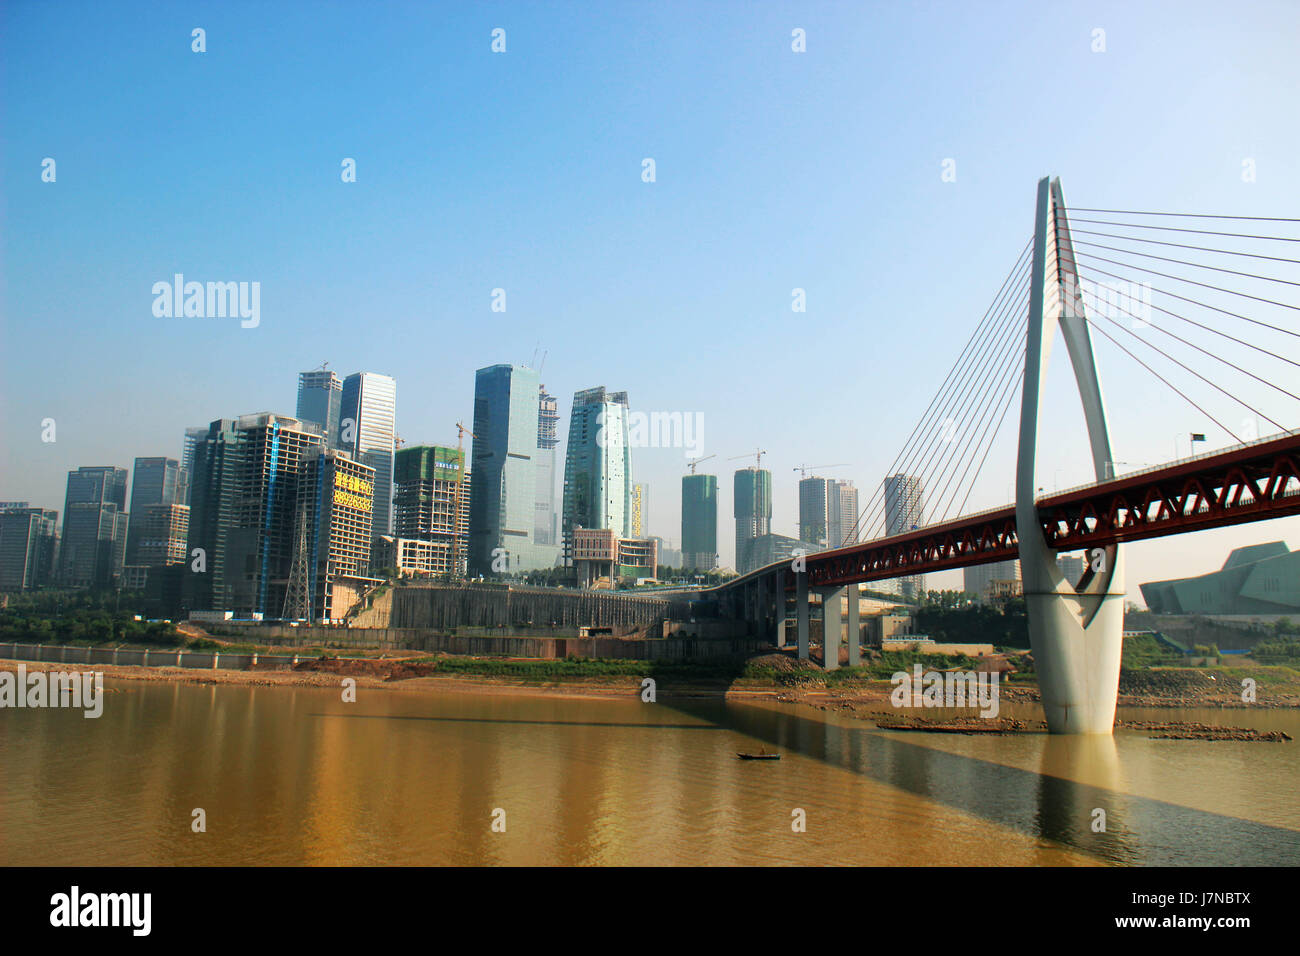 Chongqin, Chongqin, China. 25th May, 2017. Chongqing is a major city in Southwest China and one of the Five national - Stock Image